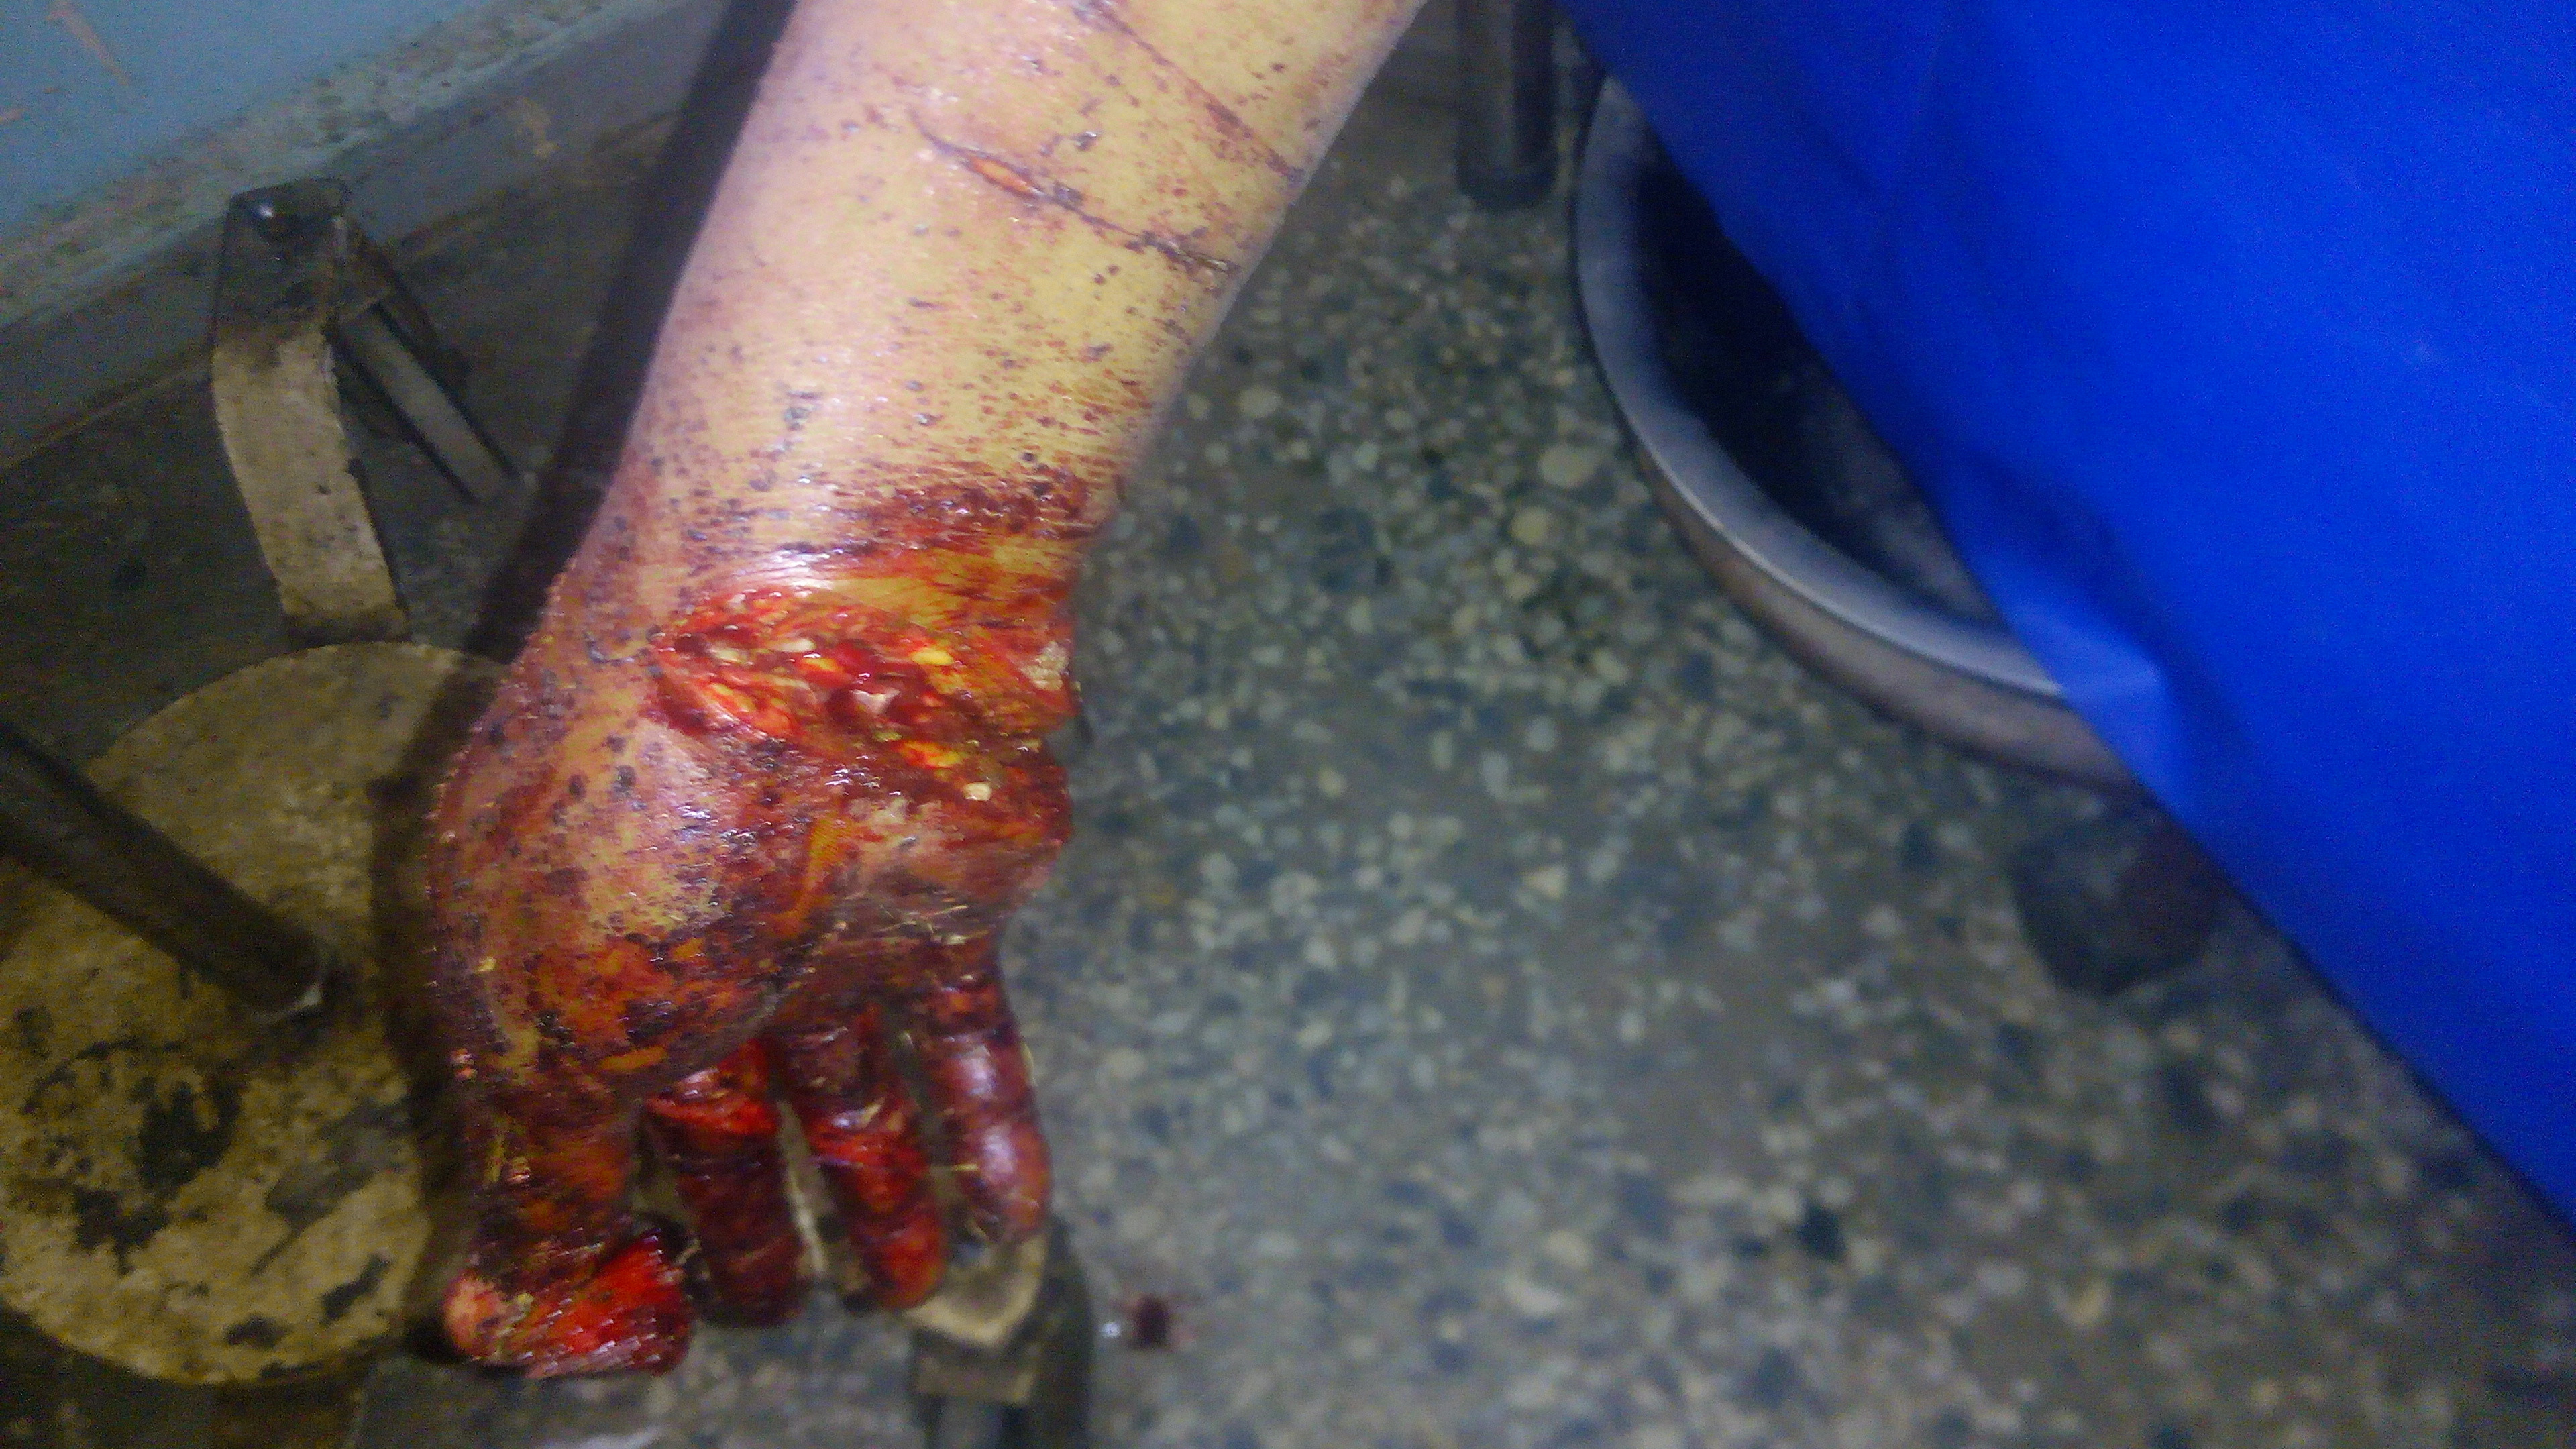 Graphic photos: Woman butchered by known persons in Abuja, her child abducted